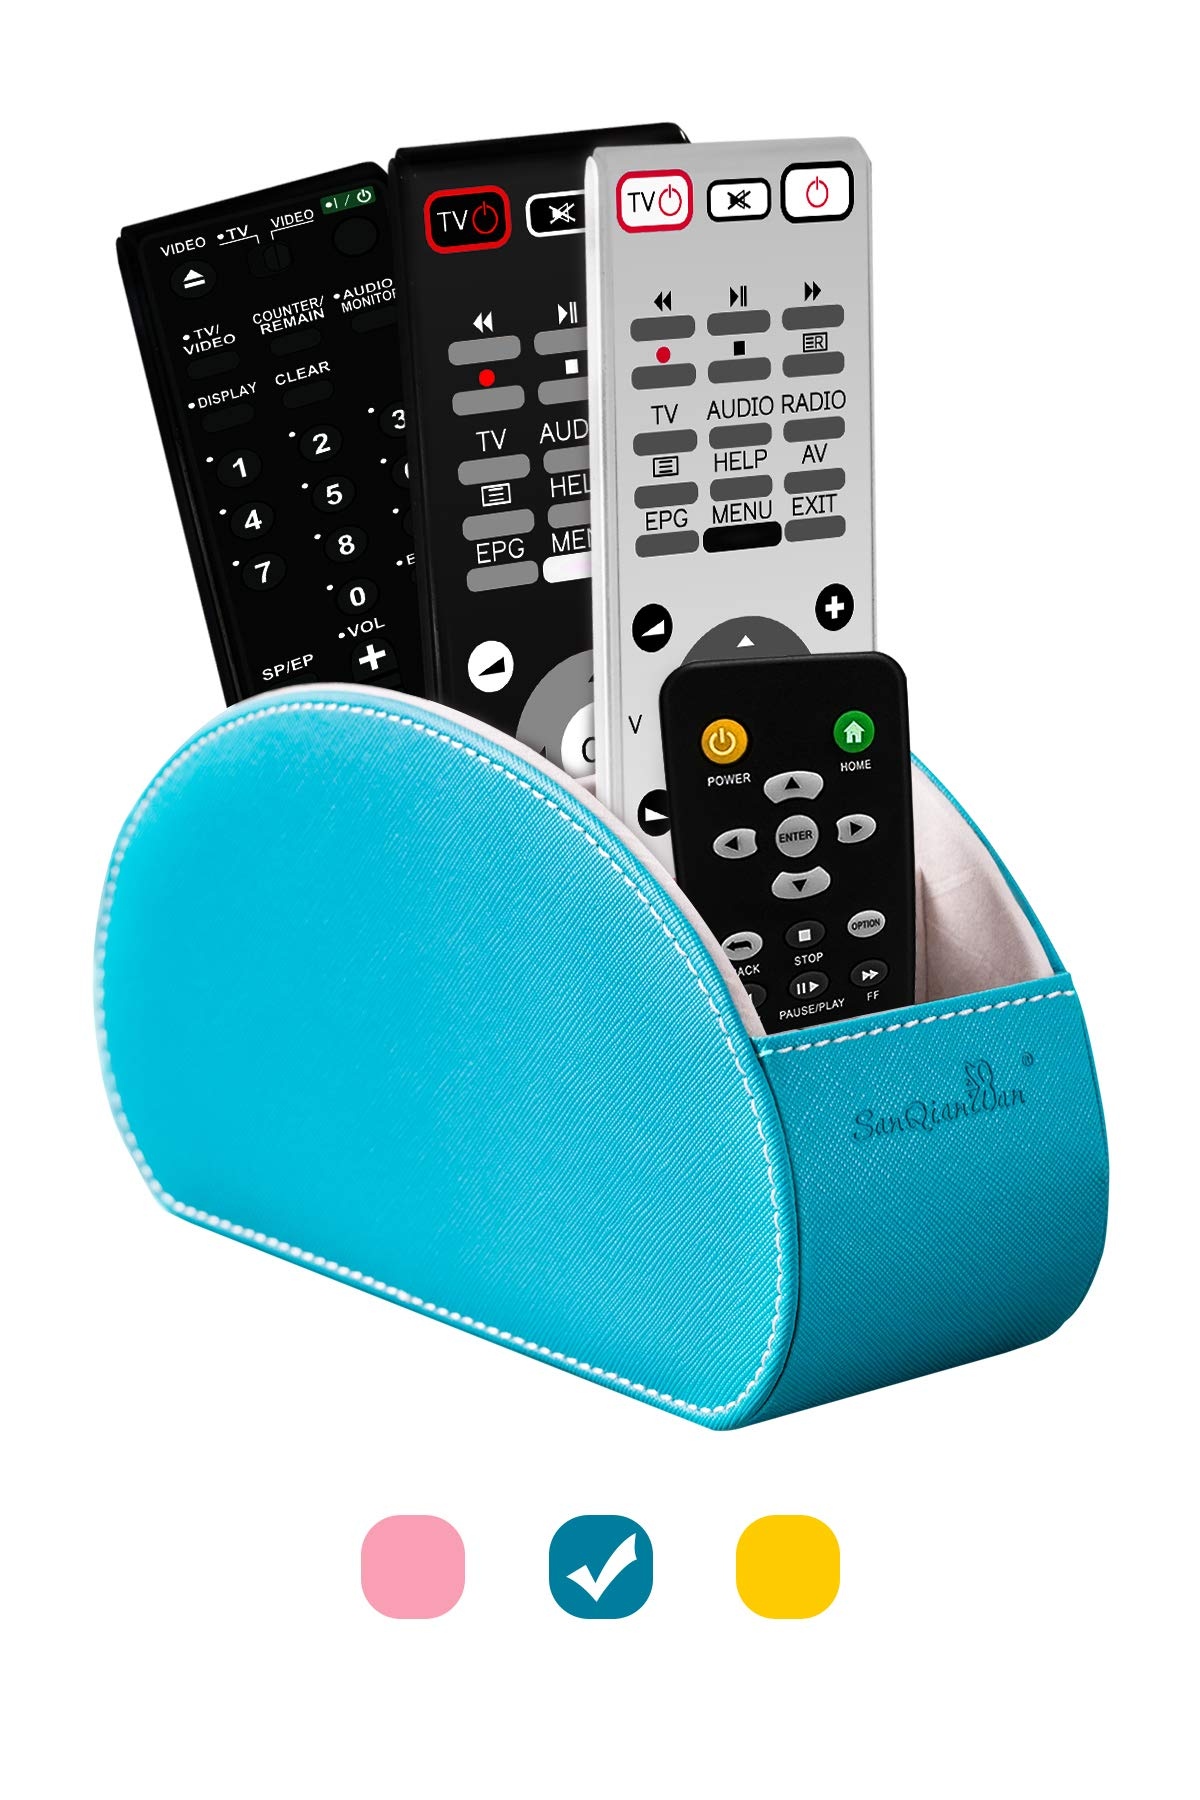 Tv Remote Control Holders Organizer Box with 5 Compartment PU Leather Multi-Functional Office Organization and Storage Caddy Store Tv Remote Holders,Brush,Pencil,Glasses and Media Player (Bule)